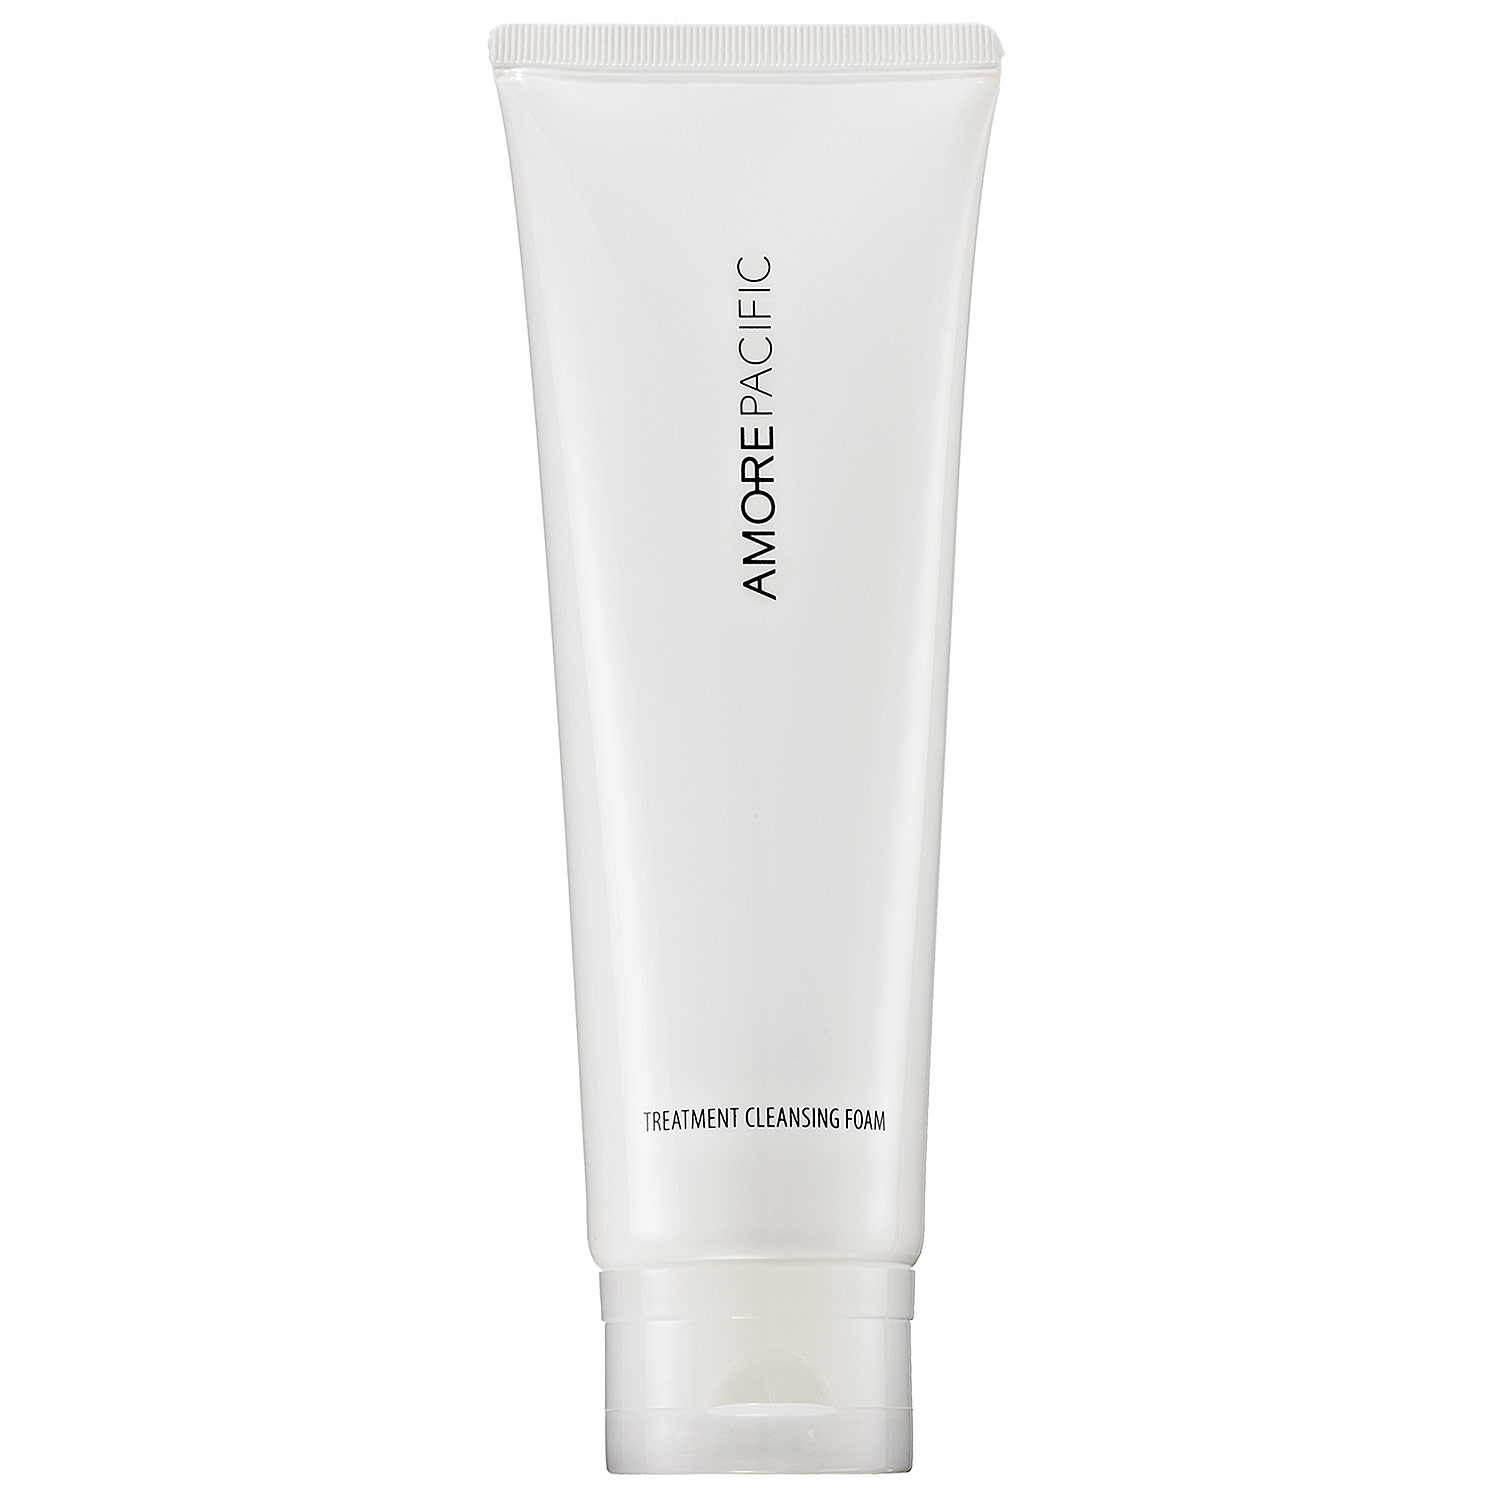 Amorepacific  Treatment Cleansing Foam